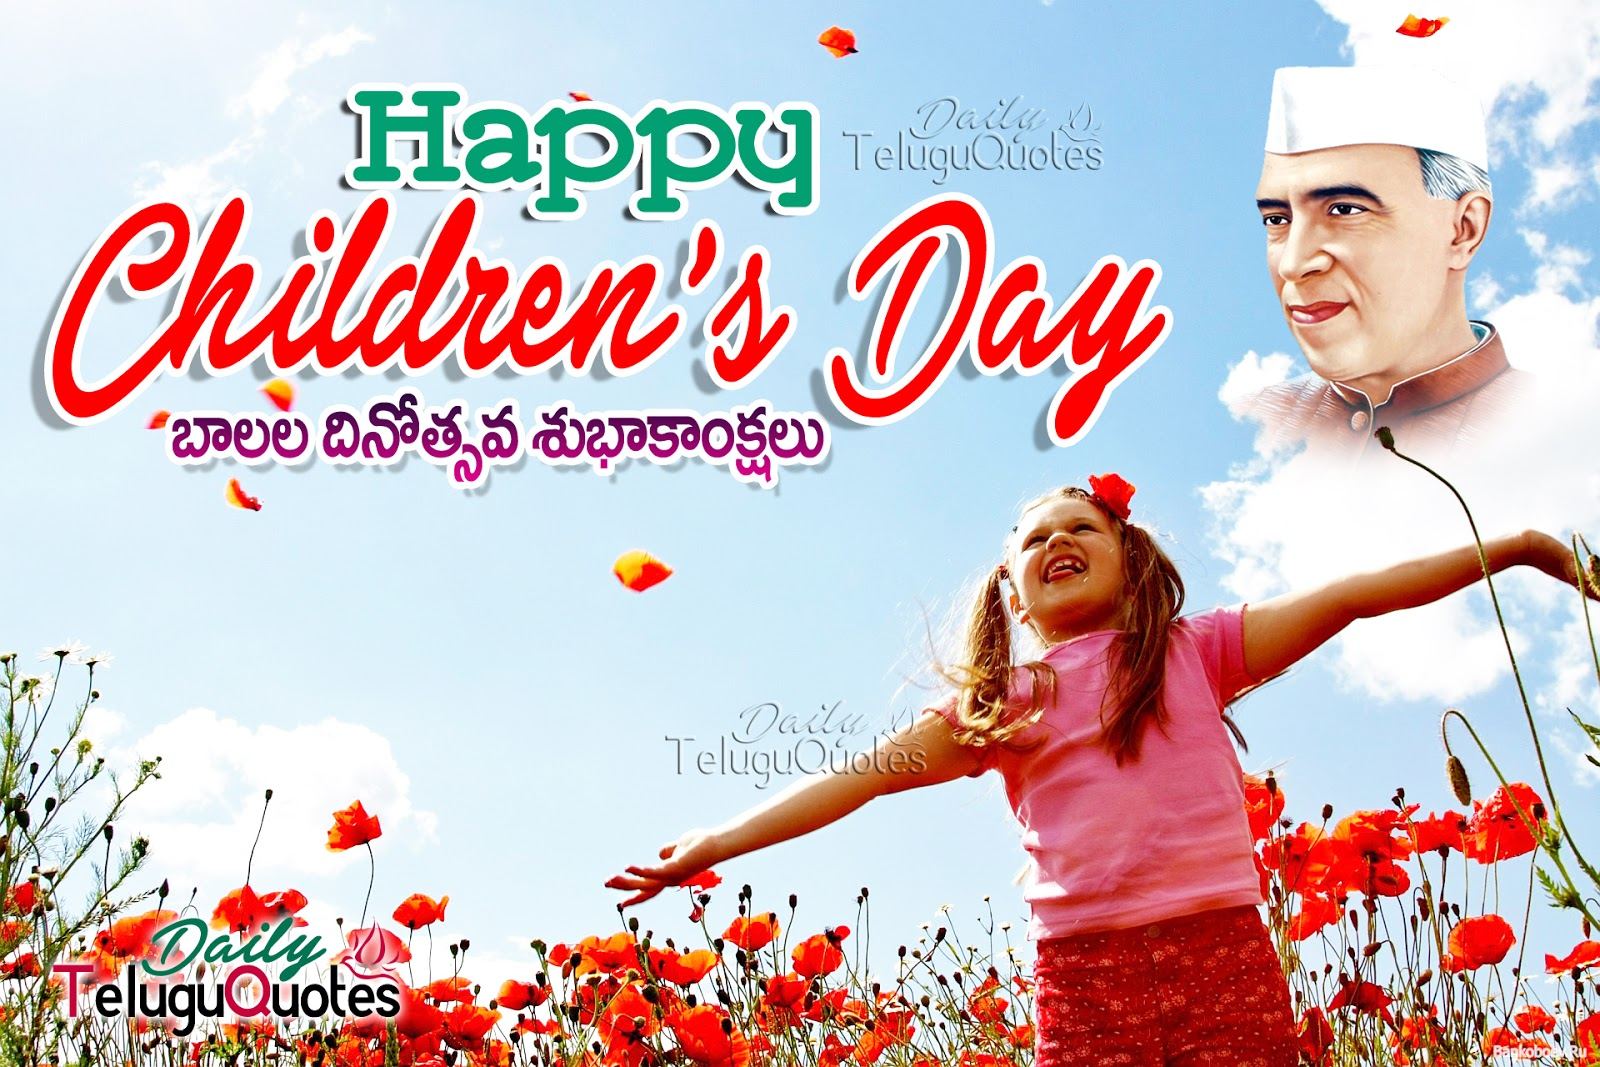 essay on childrens day essay about homeless children creative  happy childrens day telugu quotes and greetings hd images happy childrens day telugu wishes quotes and